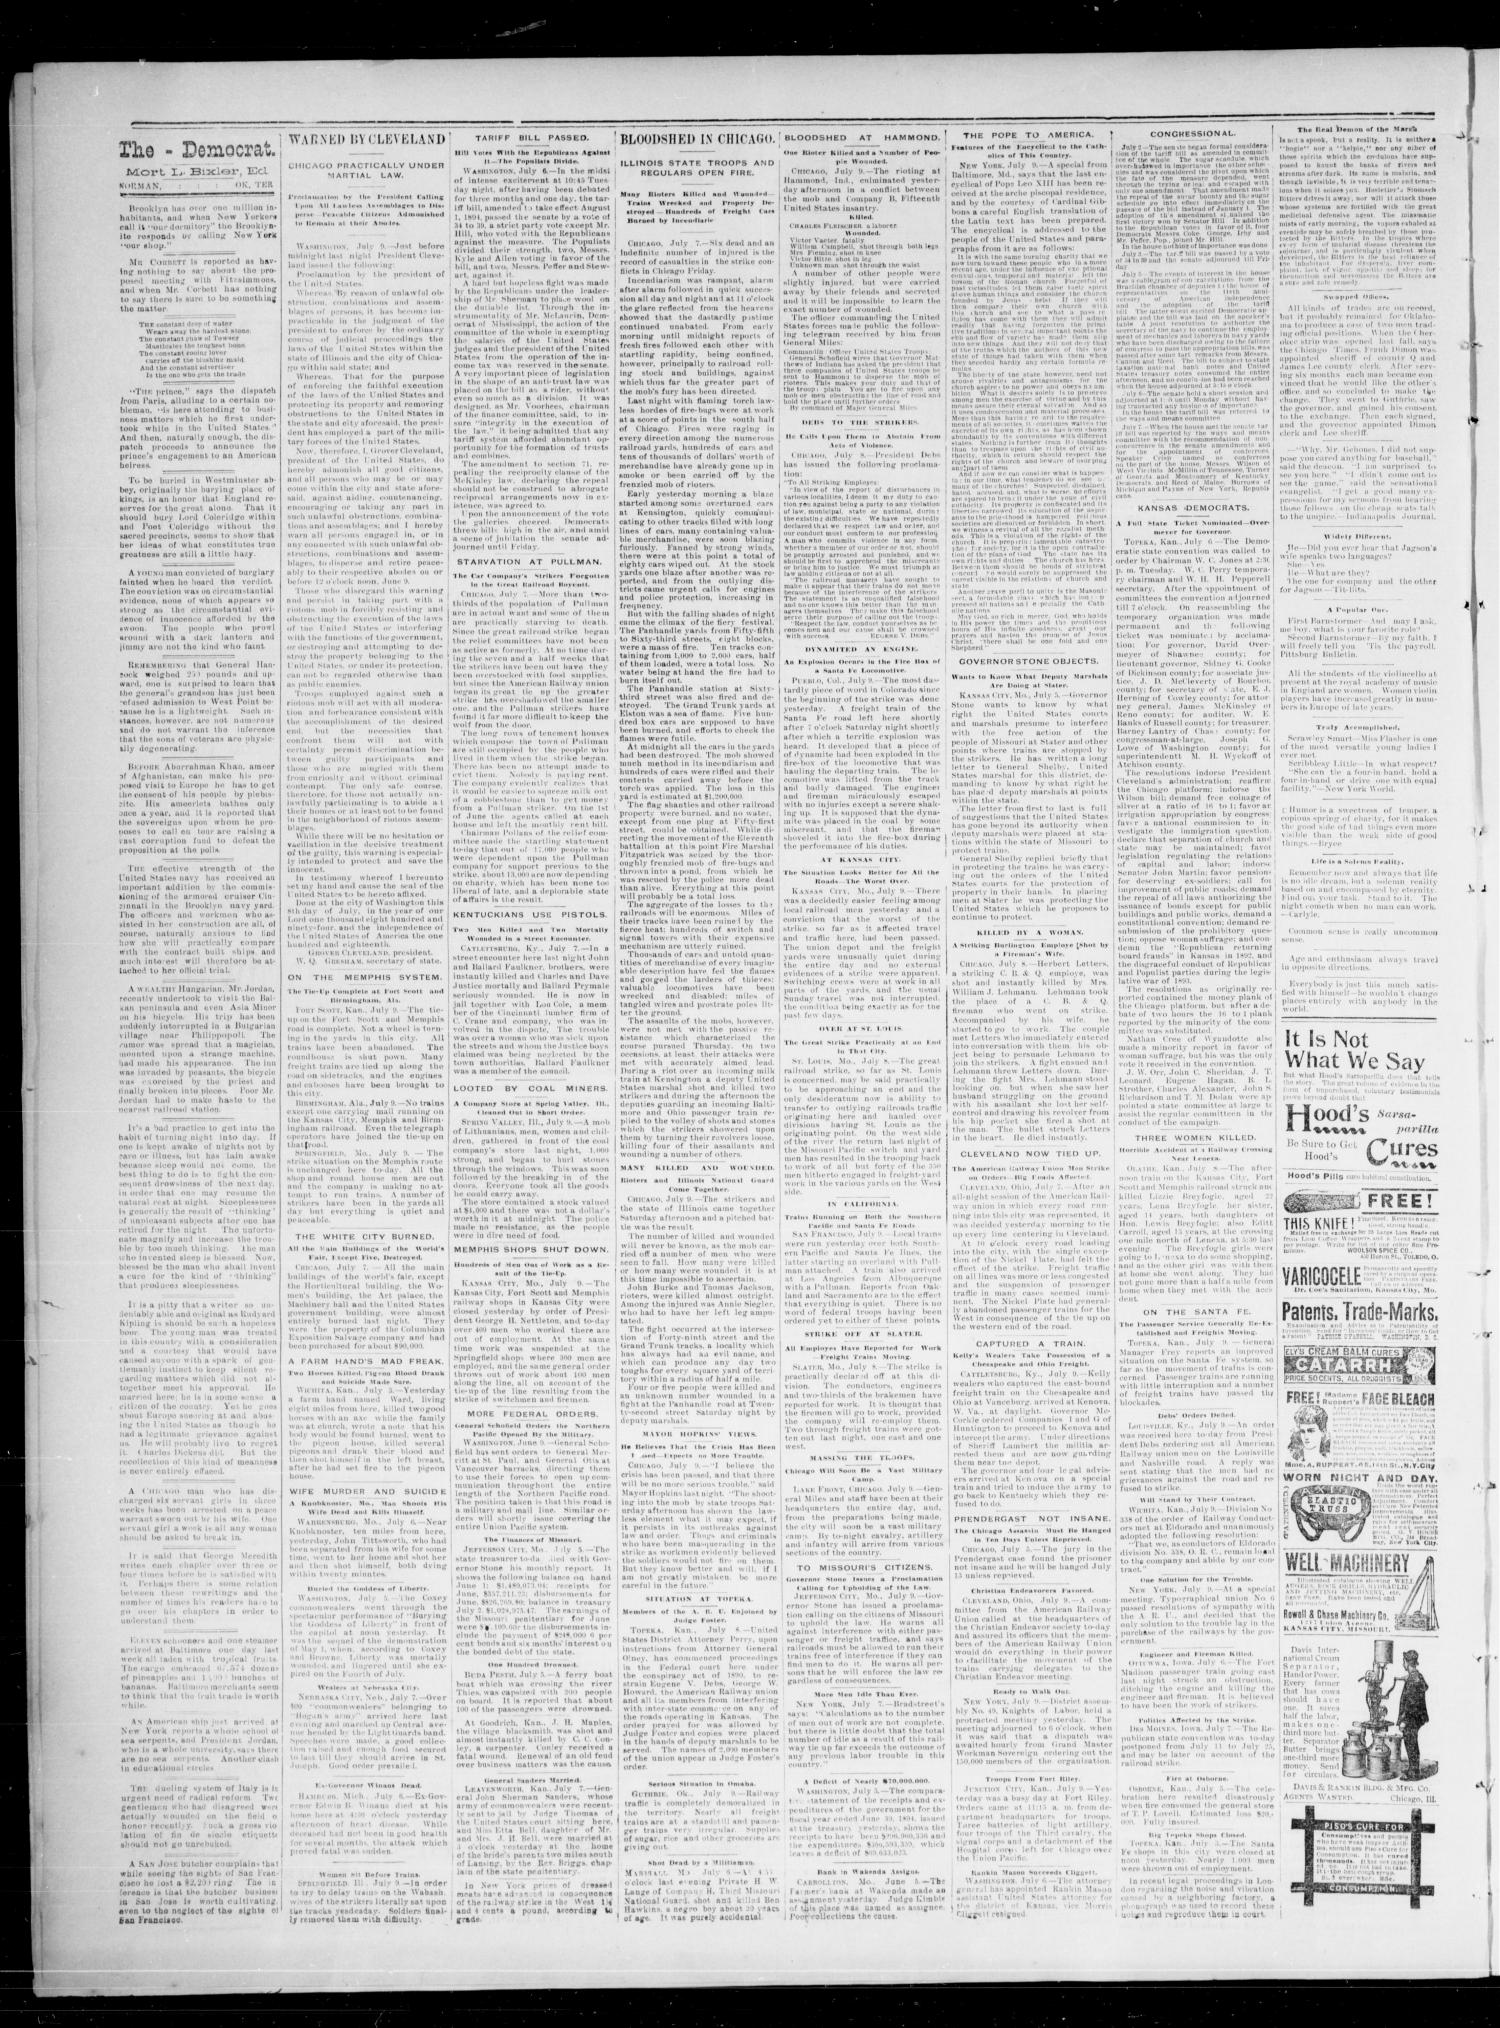 The State Democrat. (Norman, Okla.), Vol. 5, No. 124, Ed. 1 Saturday, July 14, 1894                                                                                                      [Sequence #]: 2 of 4